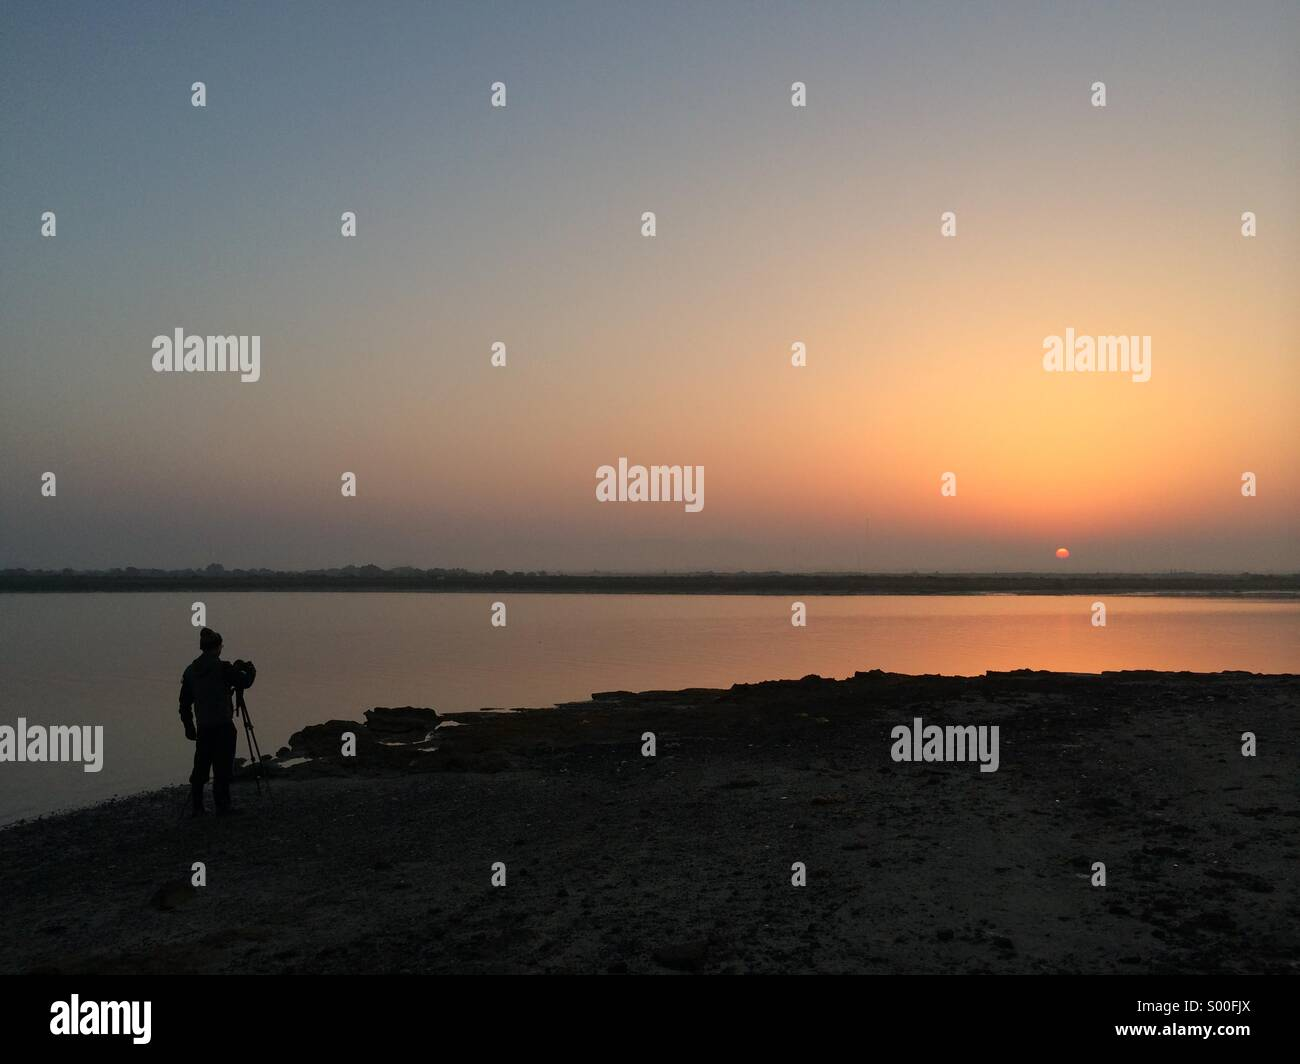 'Early Bird' A photographer capturing the morning sun - Stock Image